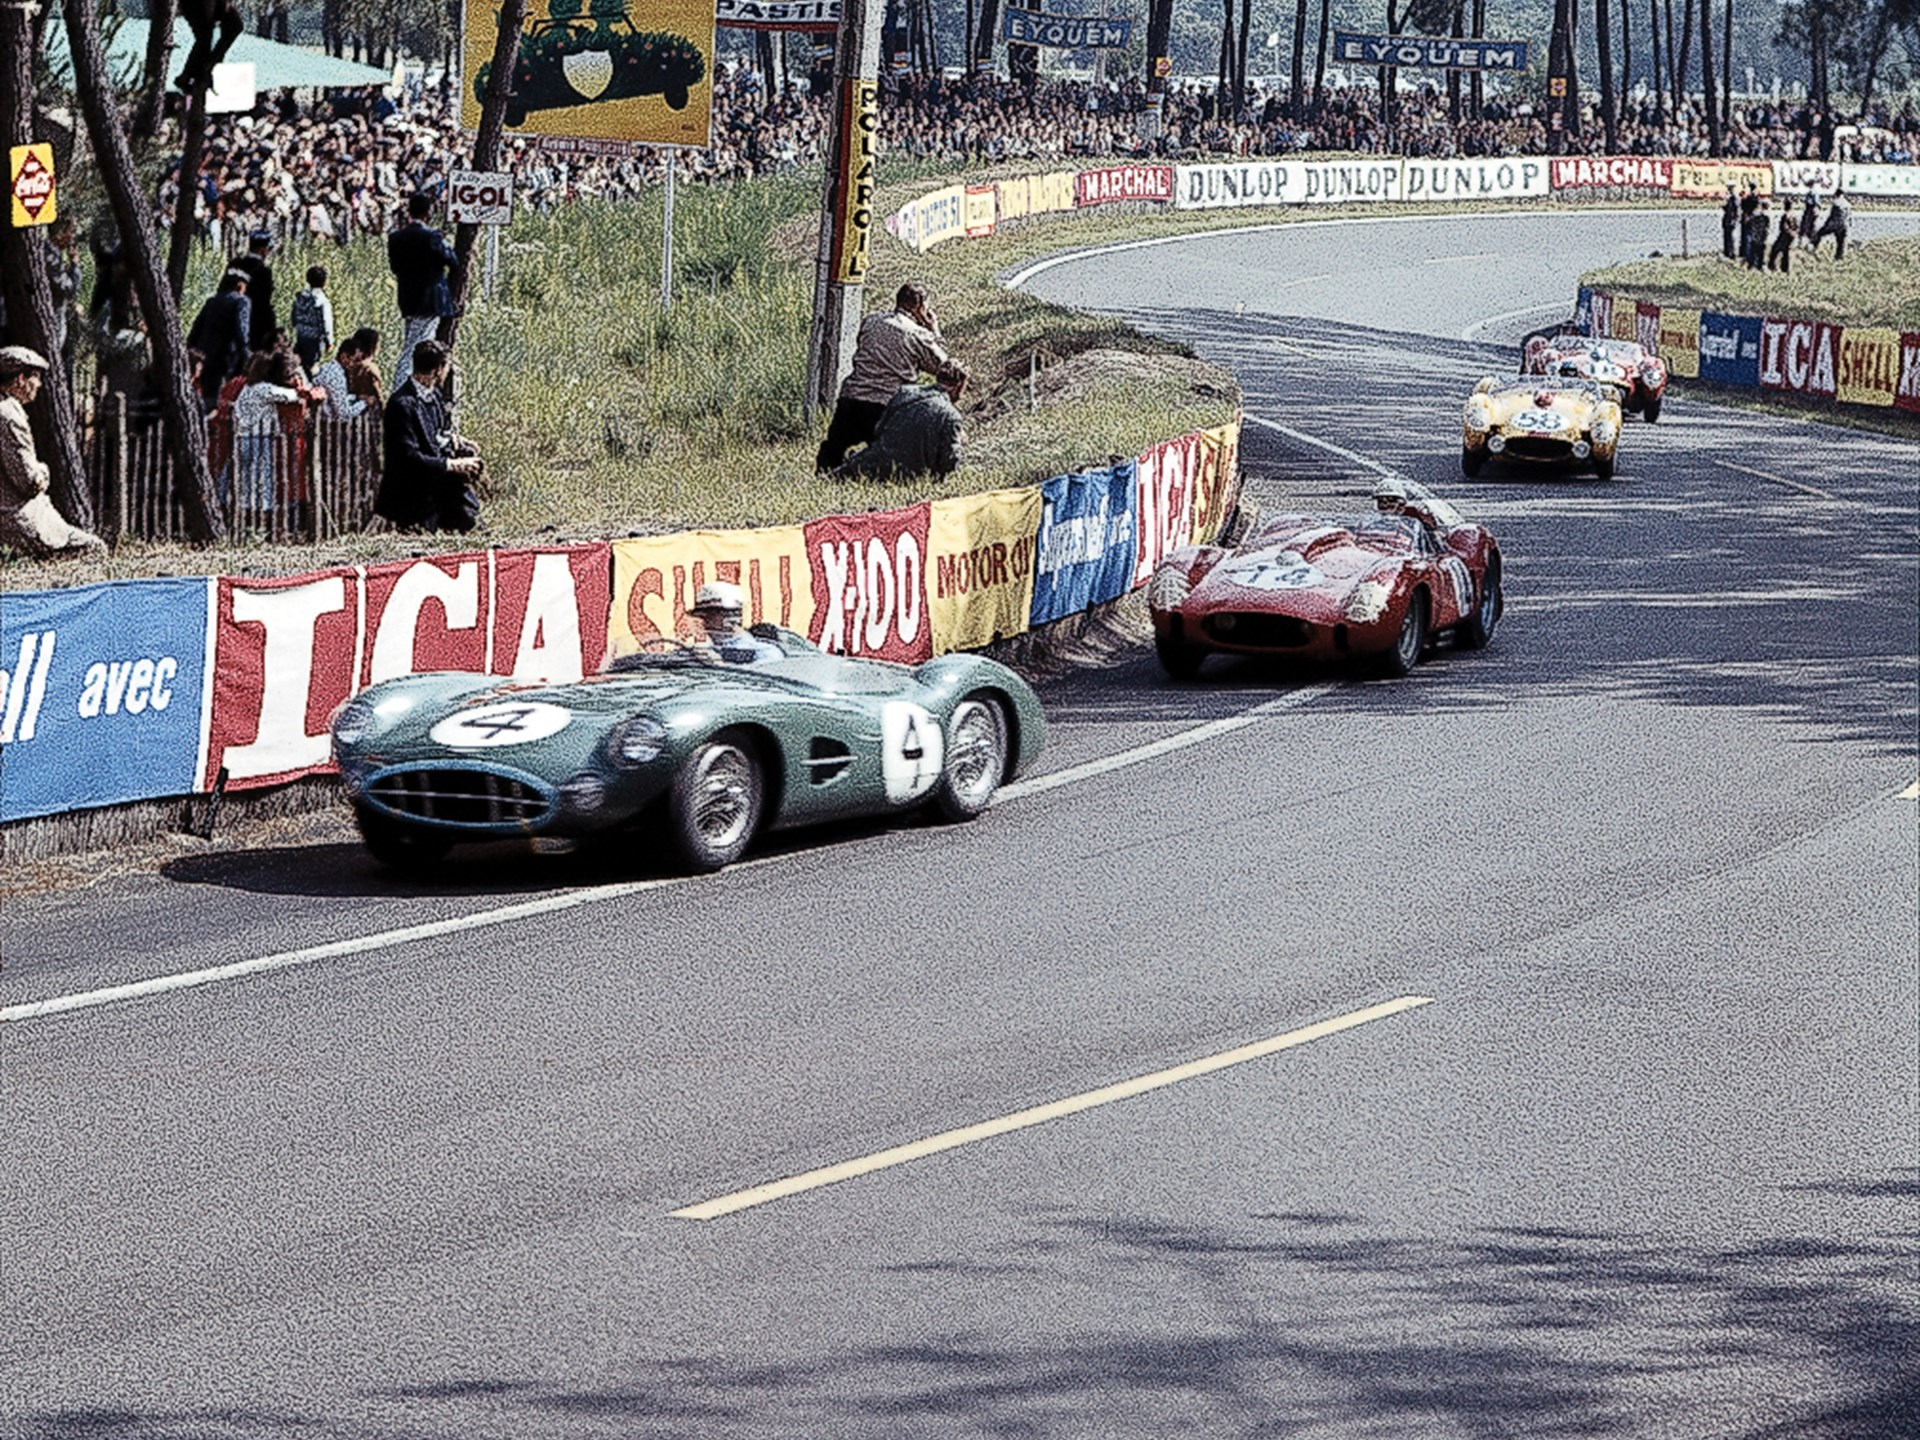 DBR1/1 leads a trio of Ferrari Testarossas, including the 250 TR/58 race winner, at the 1958 24 Hours of Le Mans.